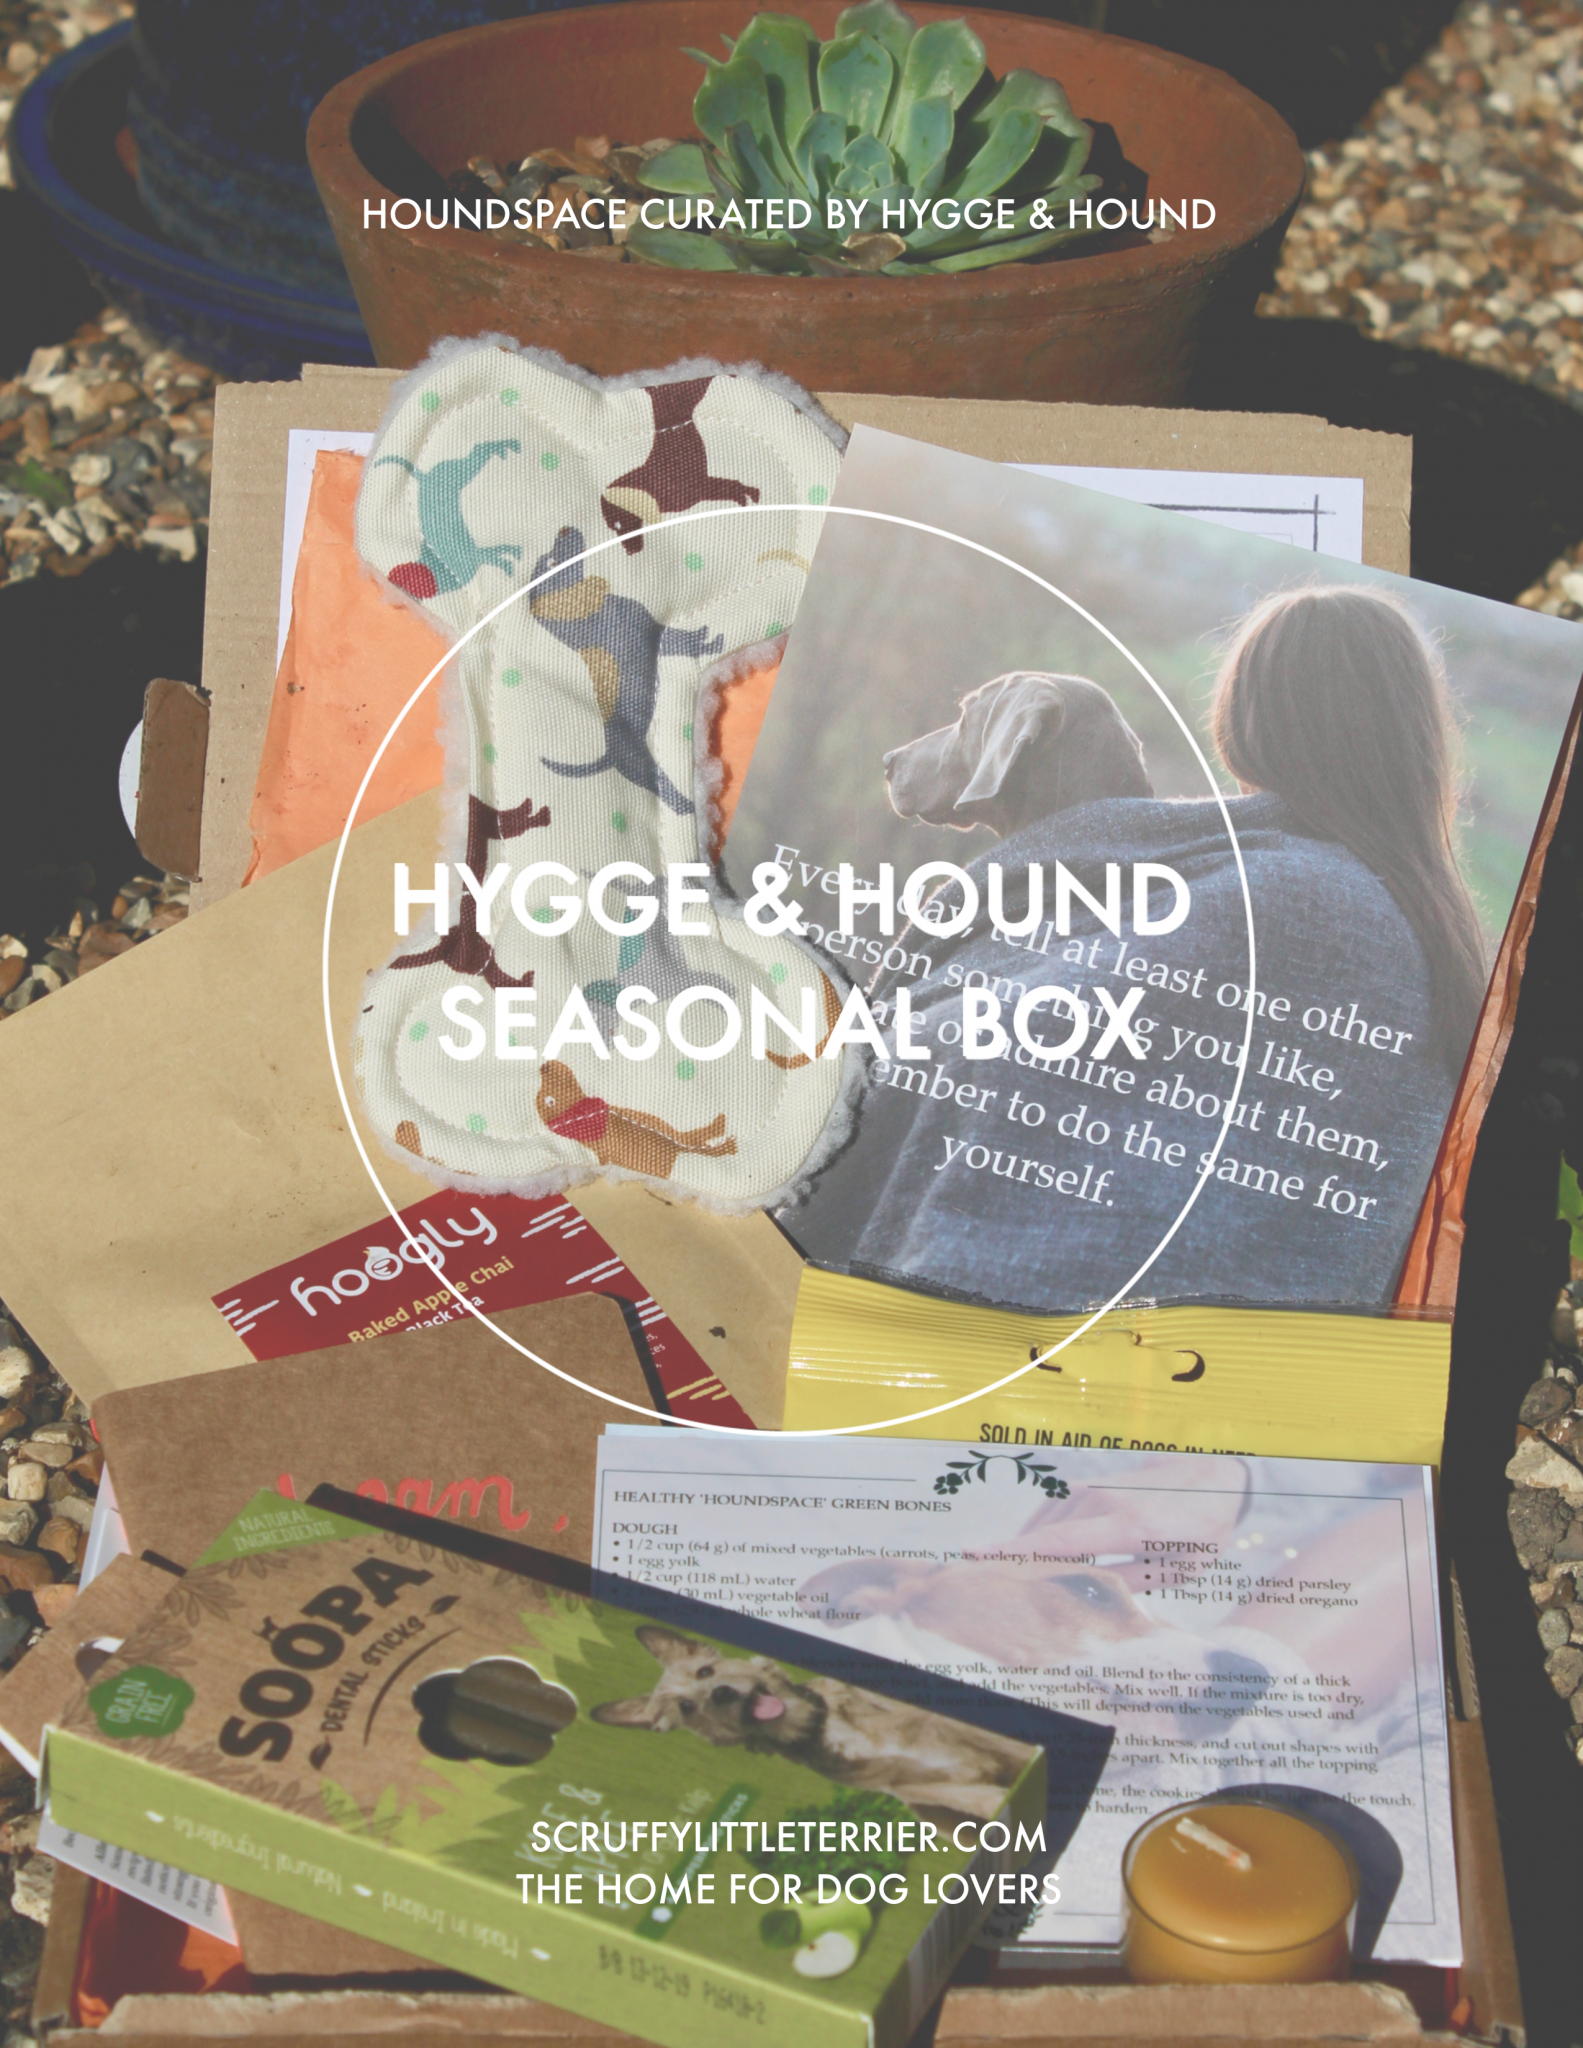 Hygge & Hound {Dog Product Review} #Hygge&Hound #DogFriendly #Mindfulness #Hygge #DogTreats #Houndspace www.scruffylittleterrier.com